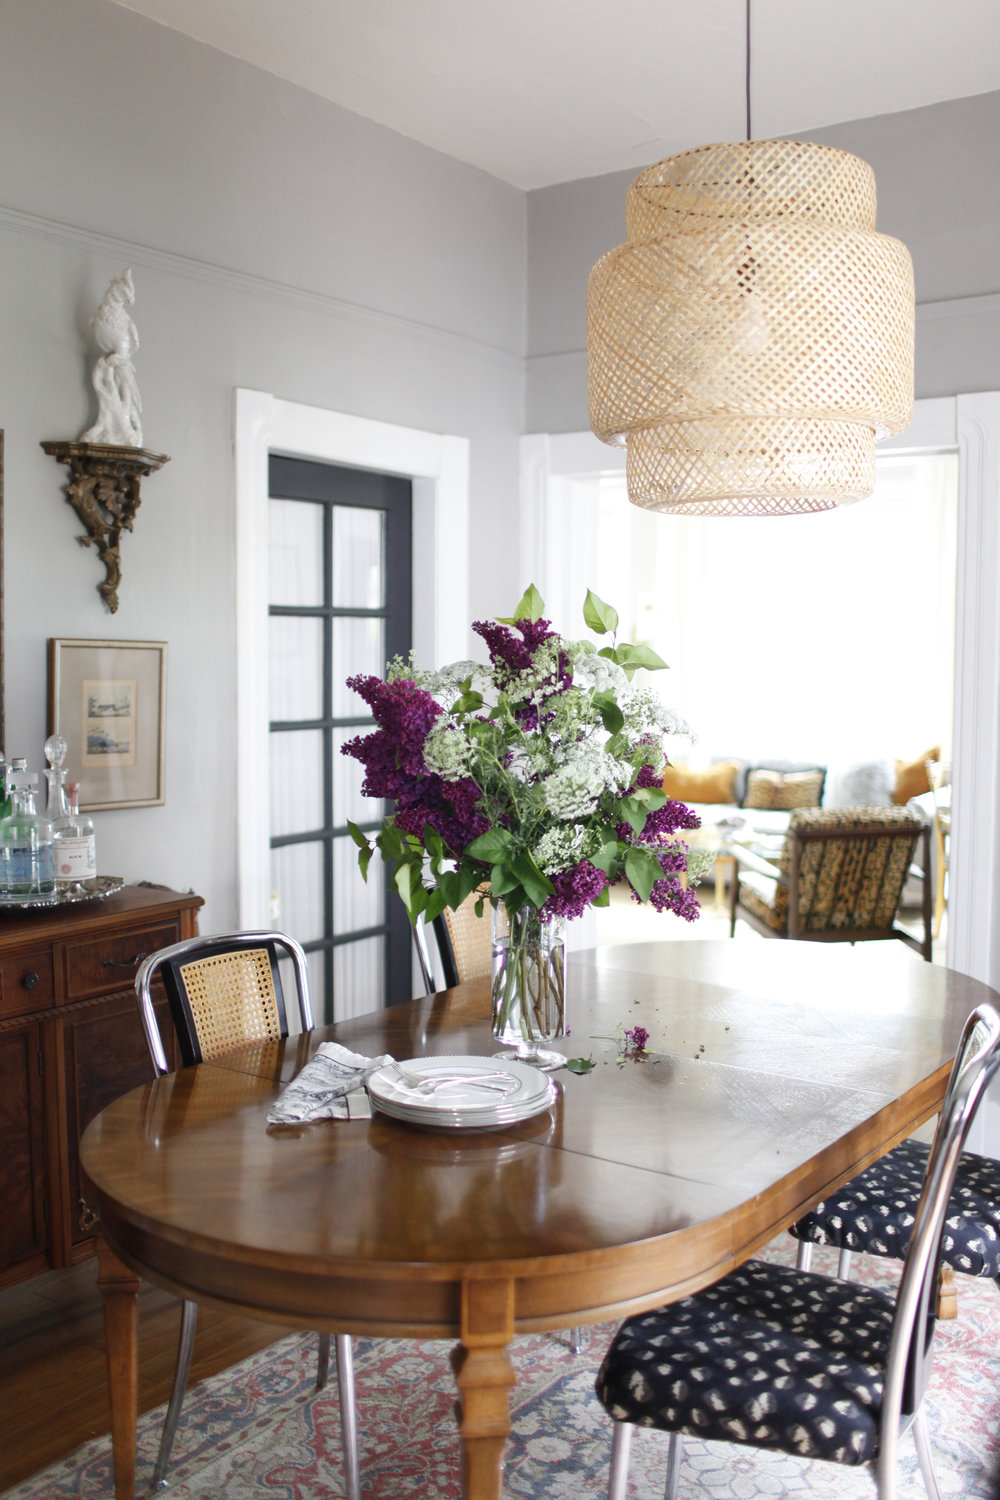 Our Seattle Cottage, Dining Room | Designed by: Lauren L Caron | Photographed by: Dorothé Brand of Belathée Photography | #ourseattlecottage